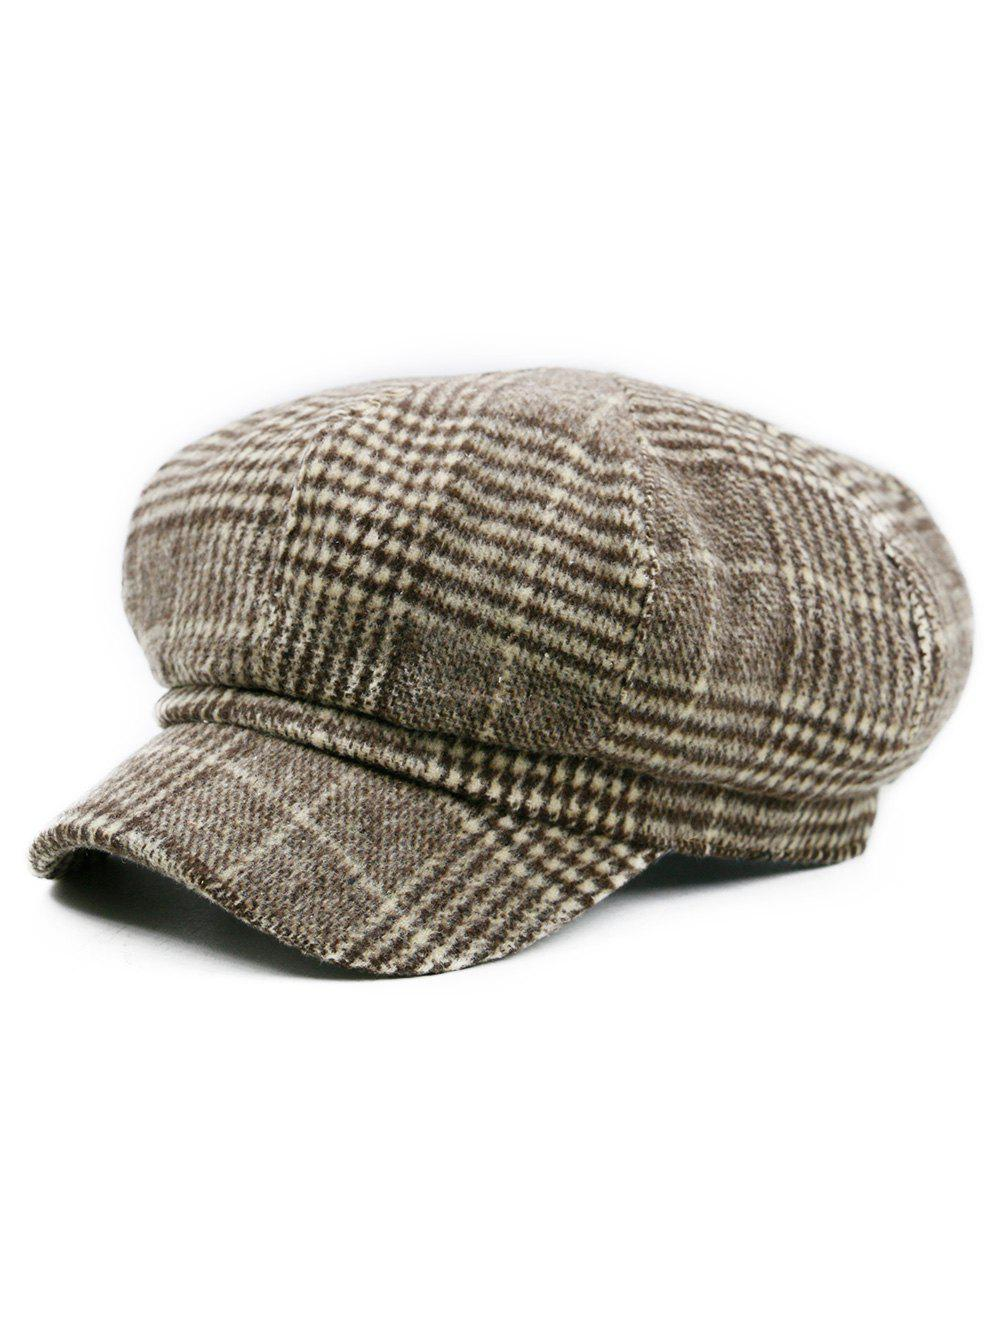 Vintage Houndstooth Pattern Embellished Newsboy HatACCESSORIES<br><br>Color: PATTERN B; Hat Type: Newsboy Caps; Group: Adult; Gender: For Men; Style: Fashion; Pattern Type: Others; Material: Acrylic; Circumference (CM): 56-57CM; Weight: 0.1200kg; Package Contents: 1 x Hat;